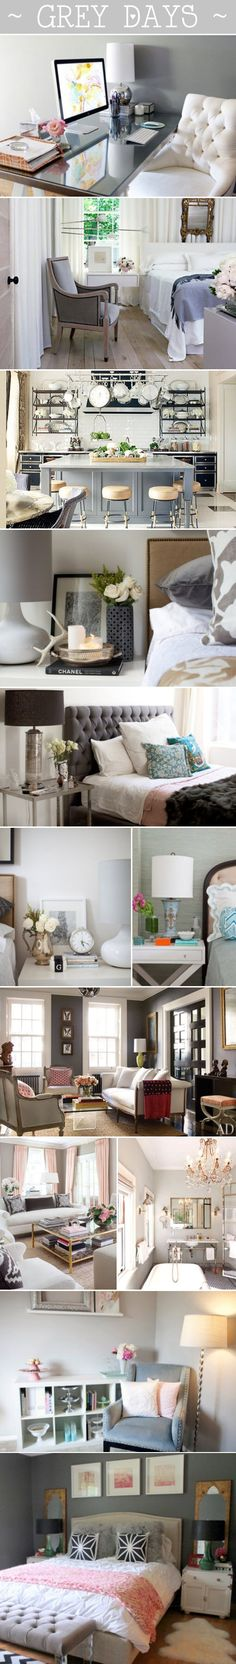 Buenas Ideas para decorar con el color Gris #decoracion #gris #ideasdecorar #Color